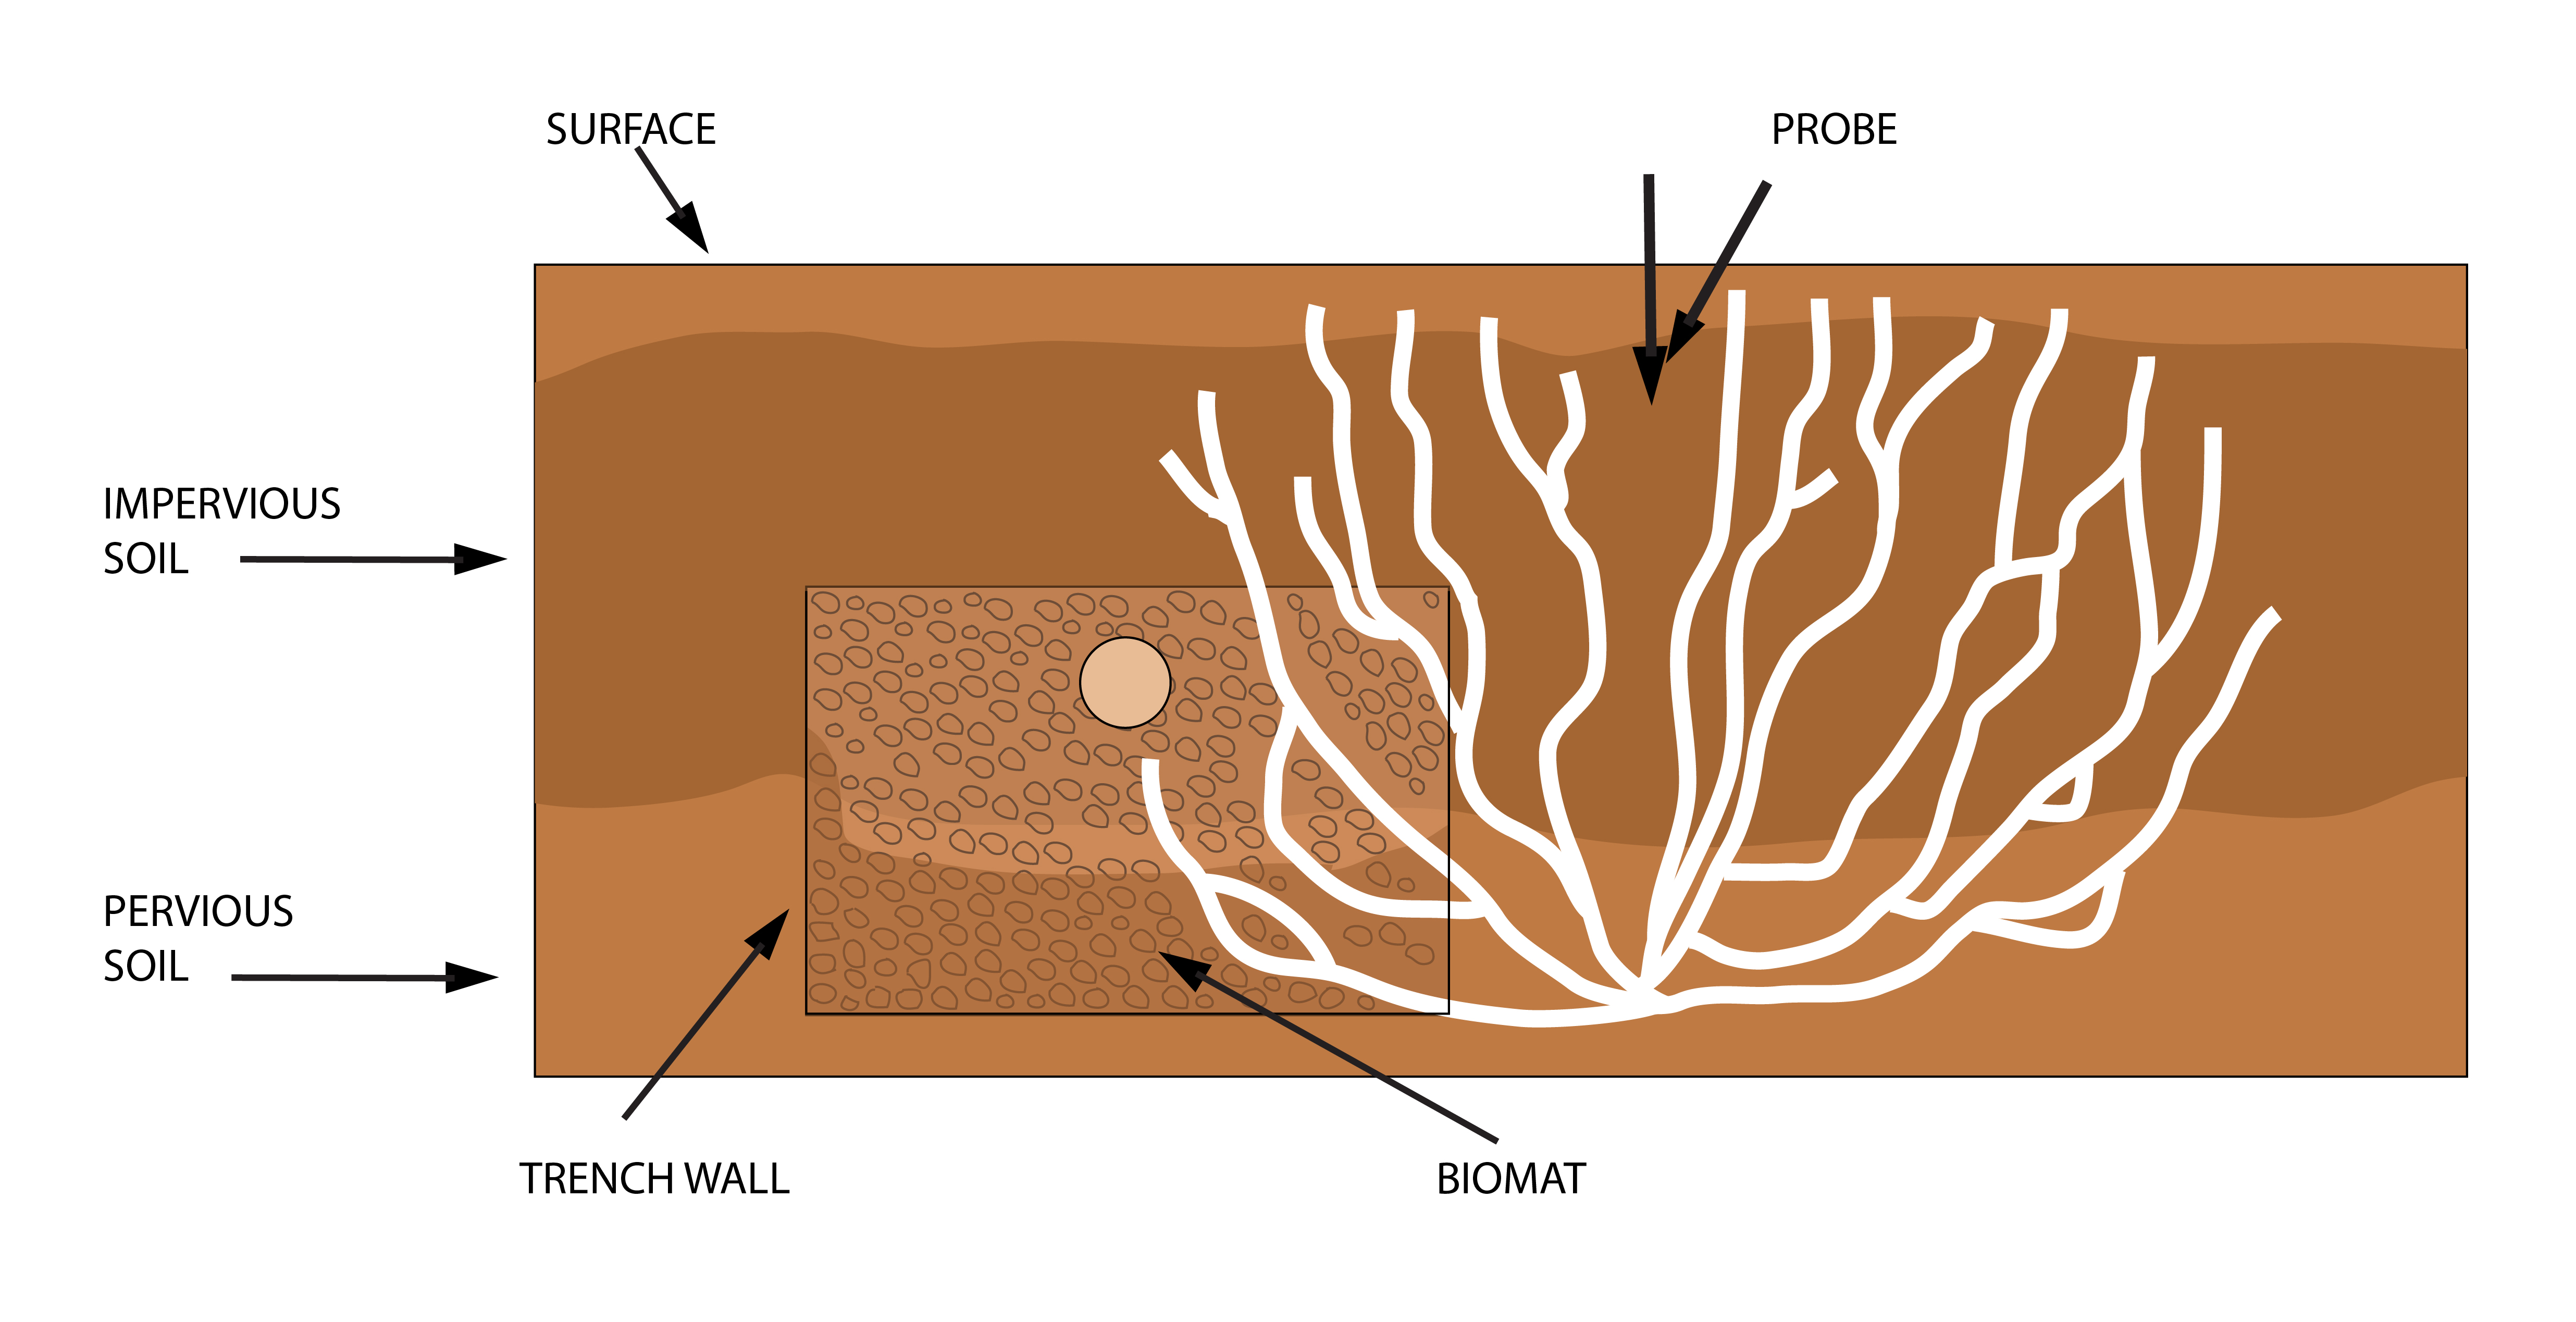 terralift-diagram-drain-field-soil